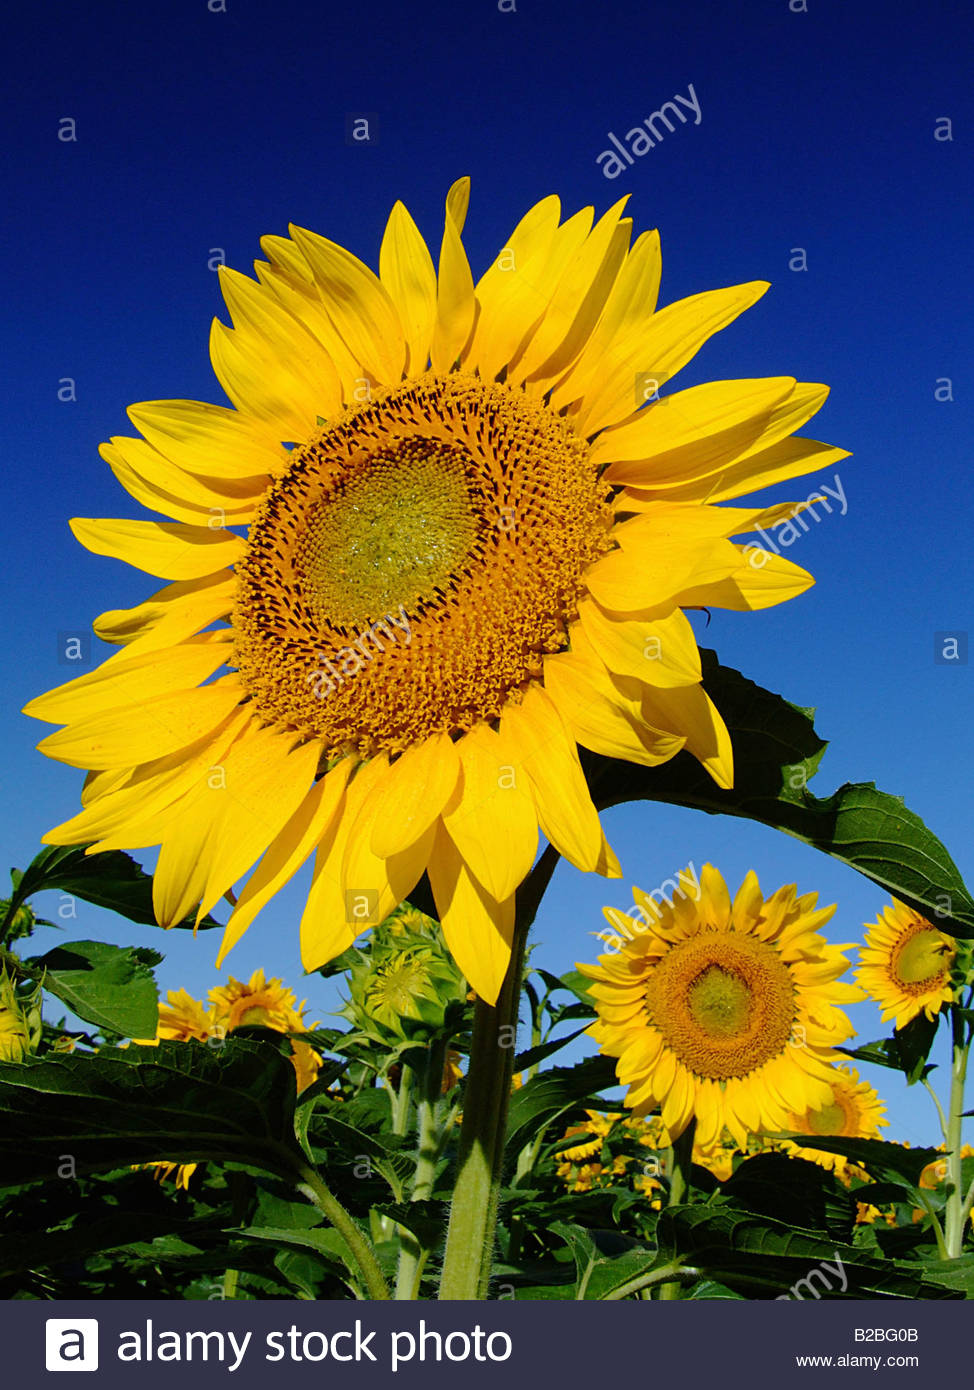 Close up of sunflower - Stock Image